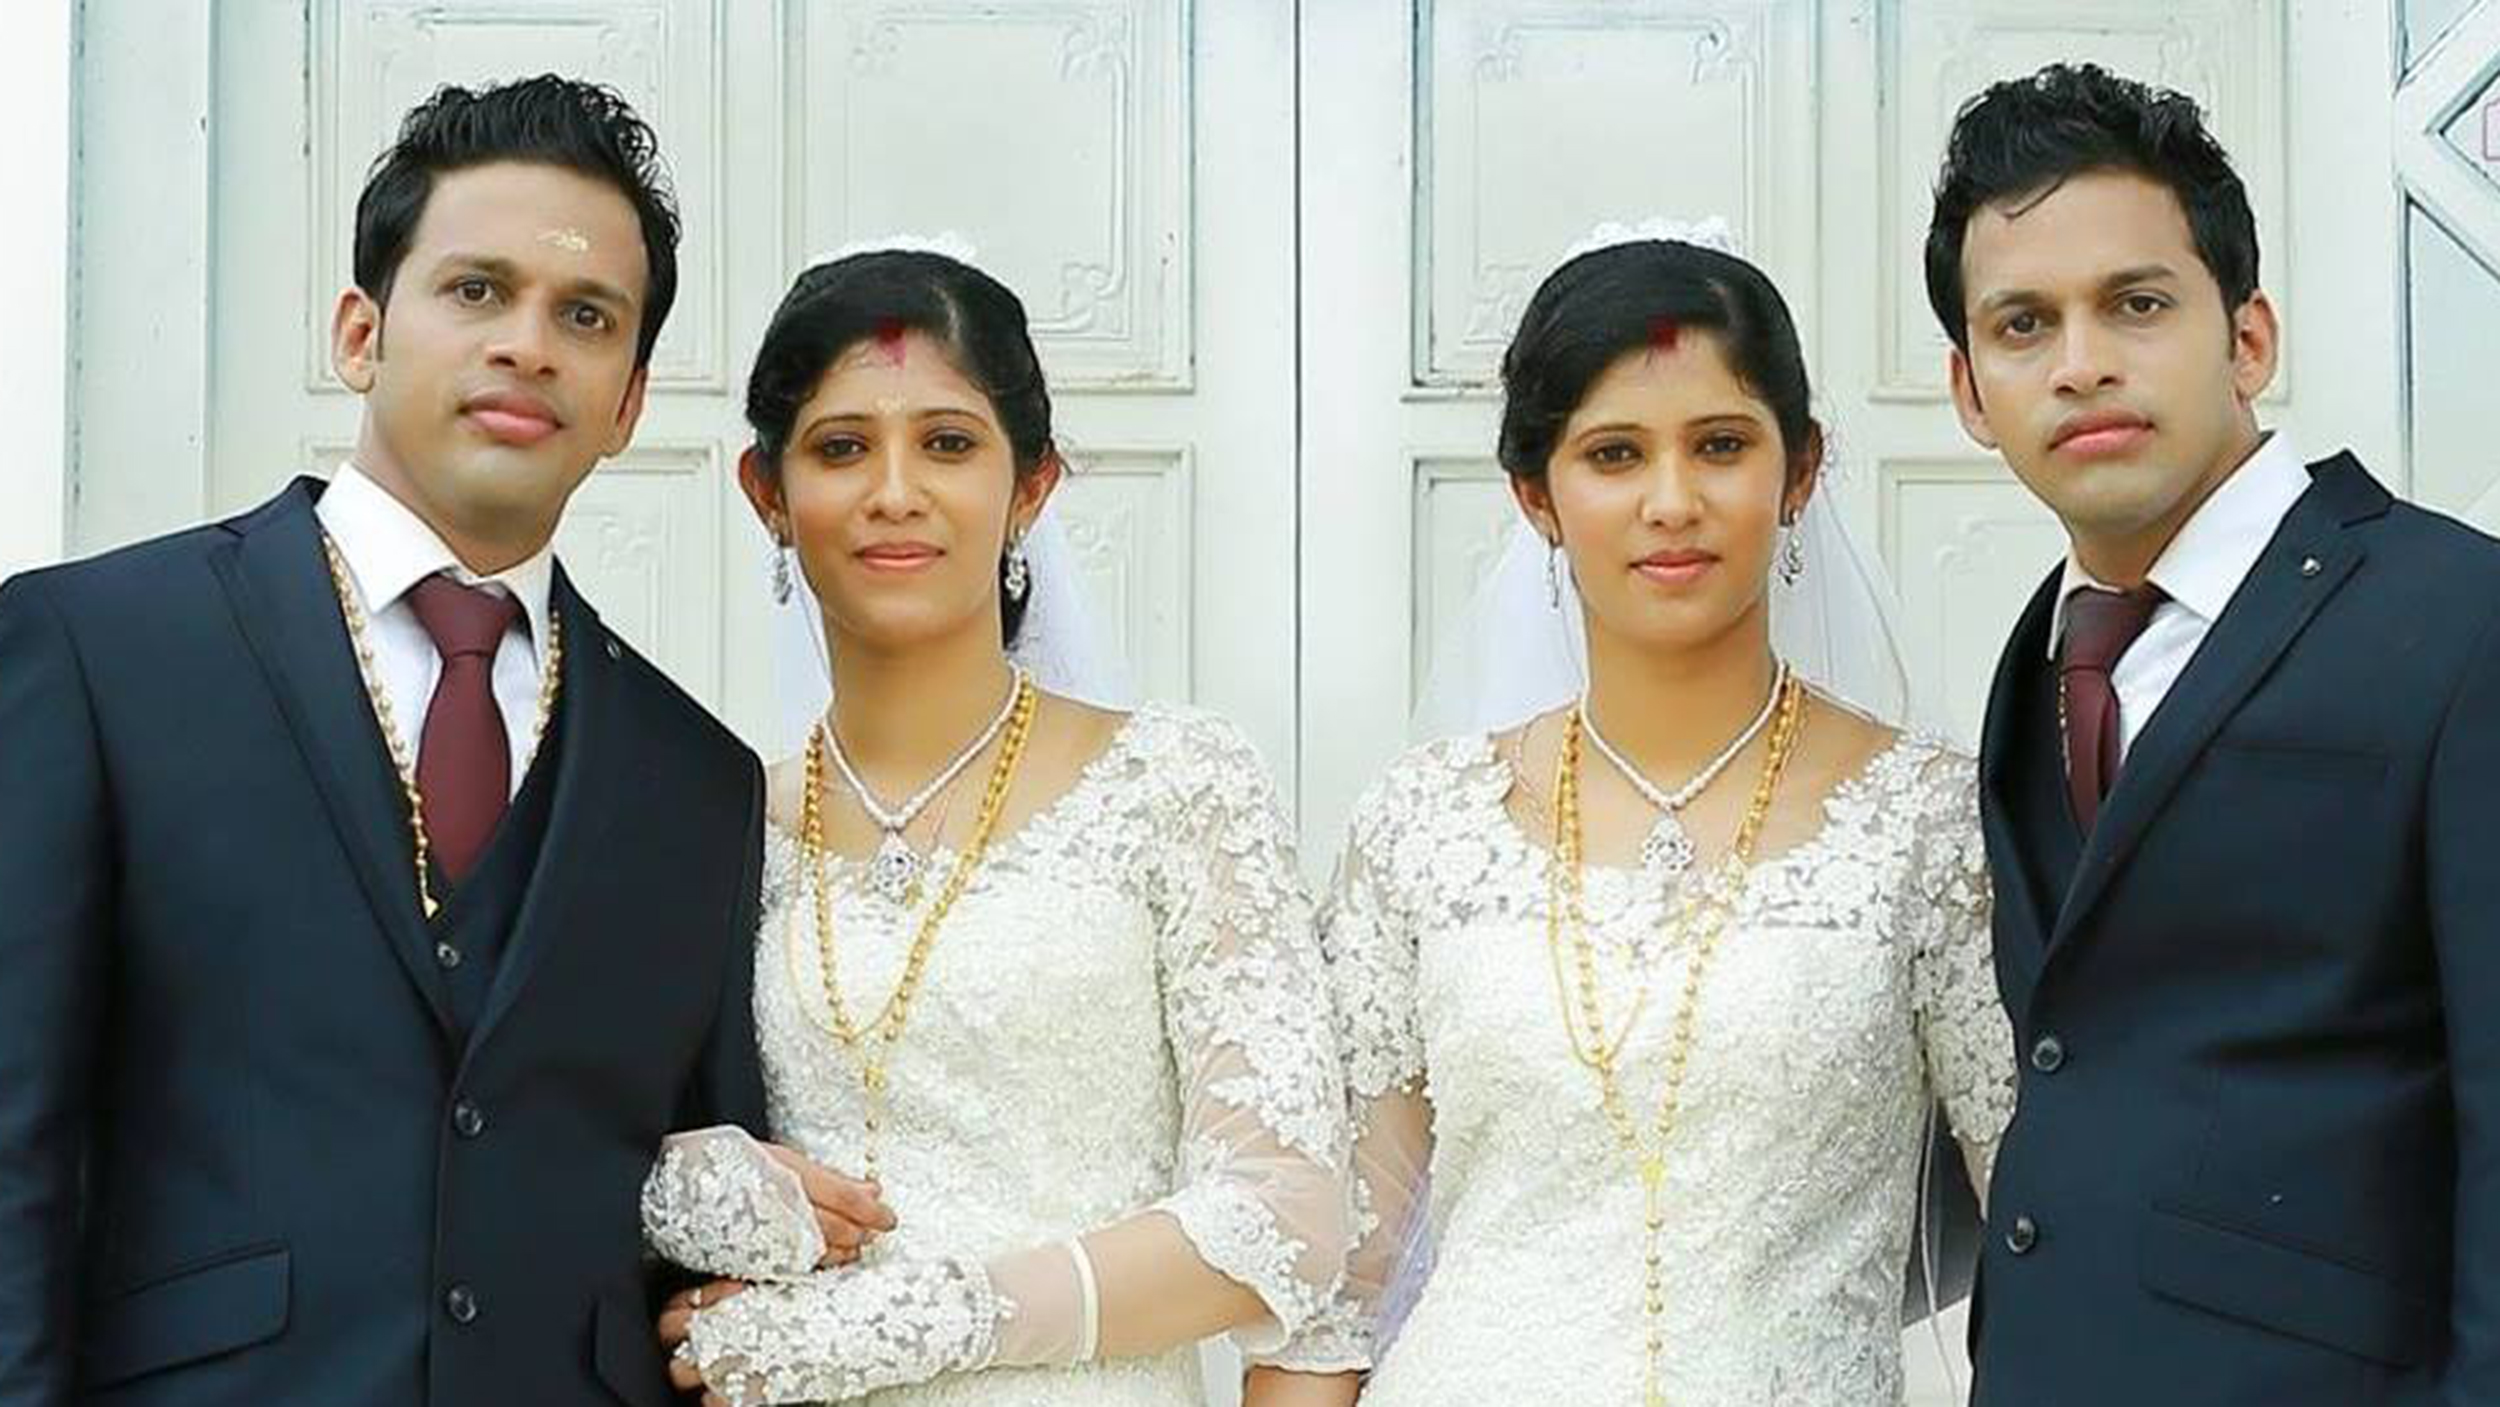 Two sets of identical twins marry in India, with twin priests and ...